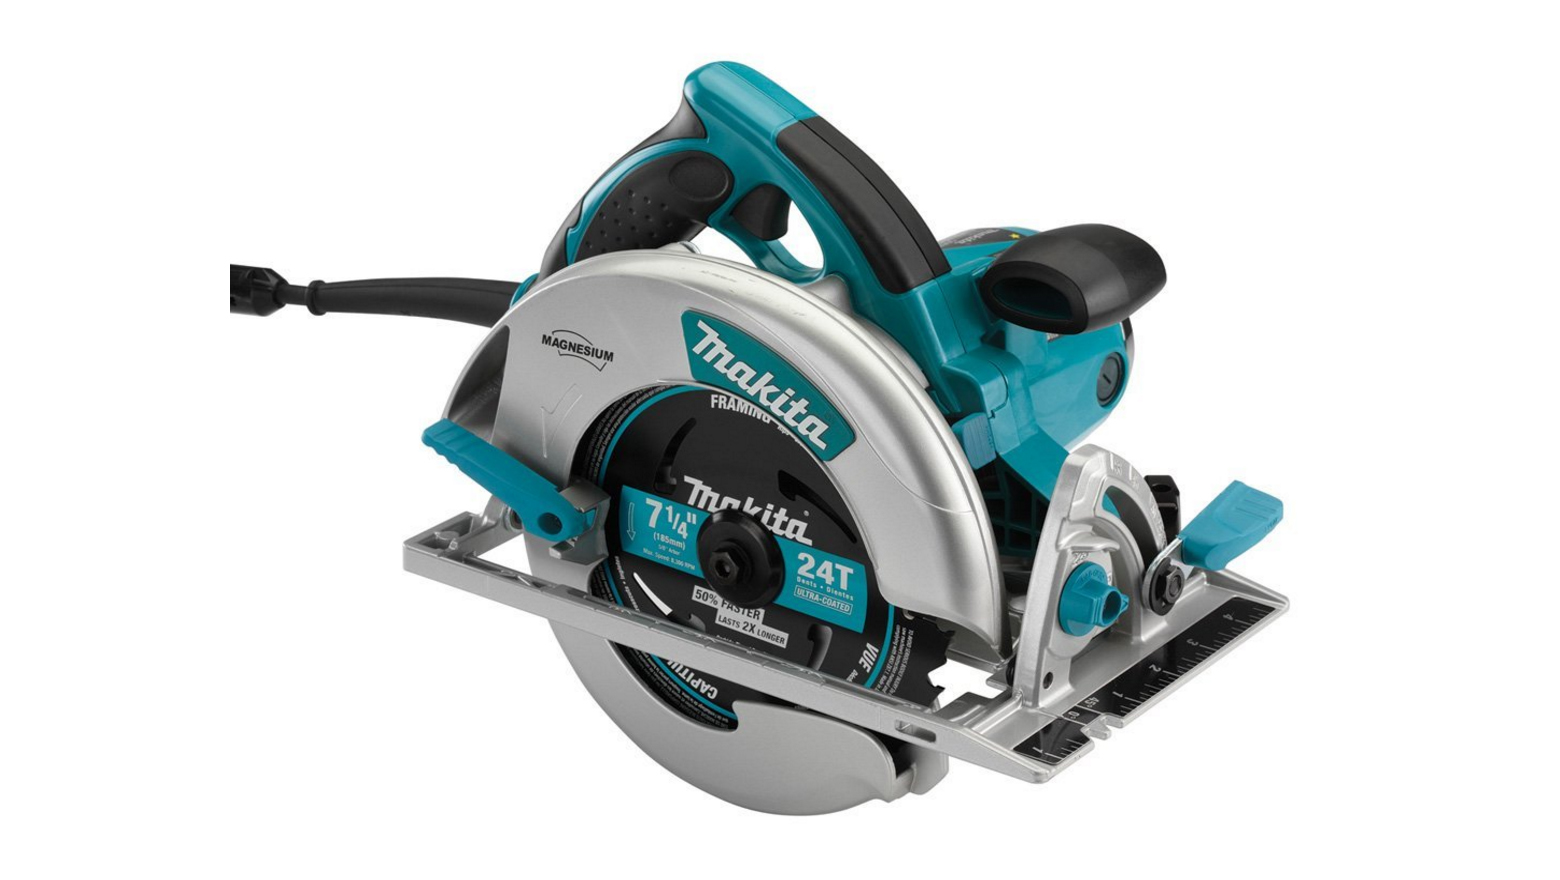 Amazon, cyber monday, cyber monday sales, cyber monday deals, tools, power tools, hand tools, woodworking tools, circular saw, skill saw, Makita